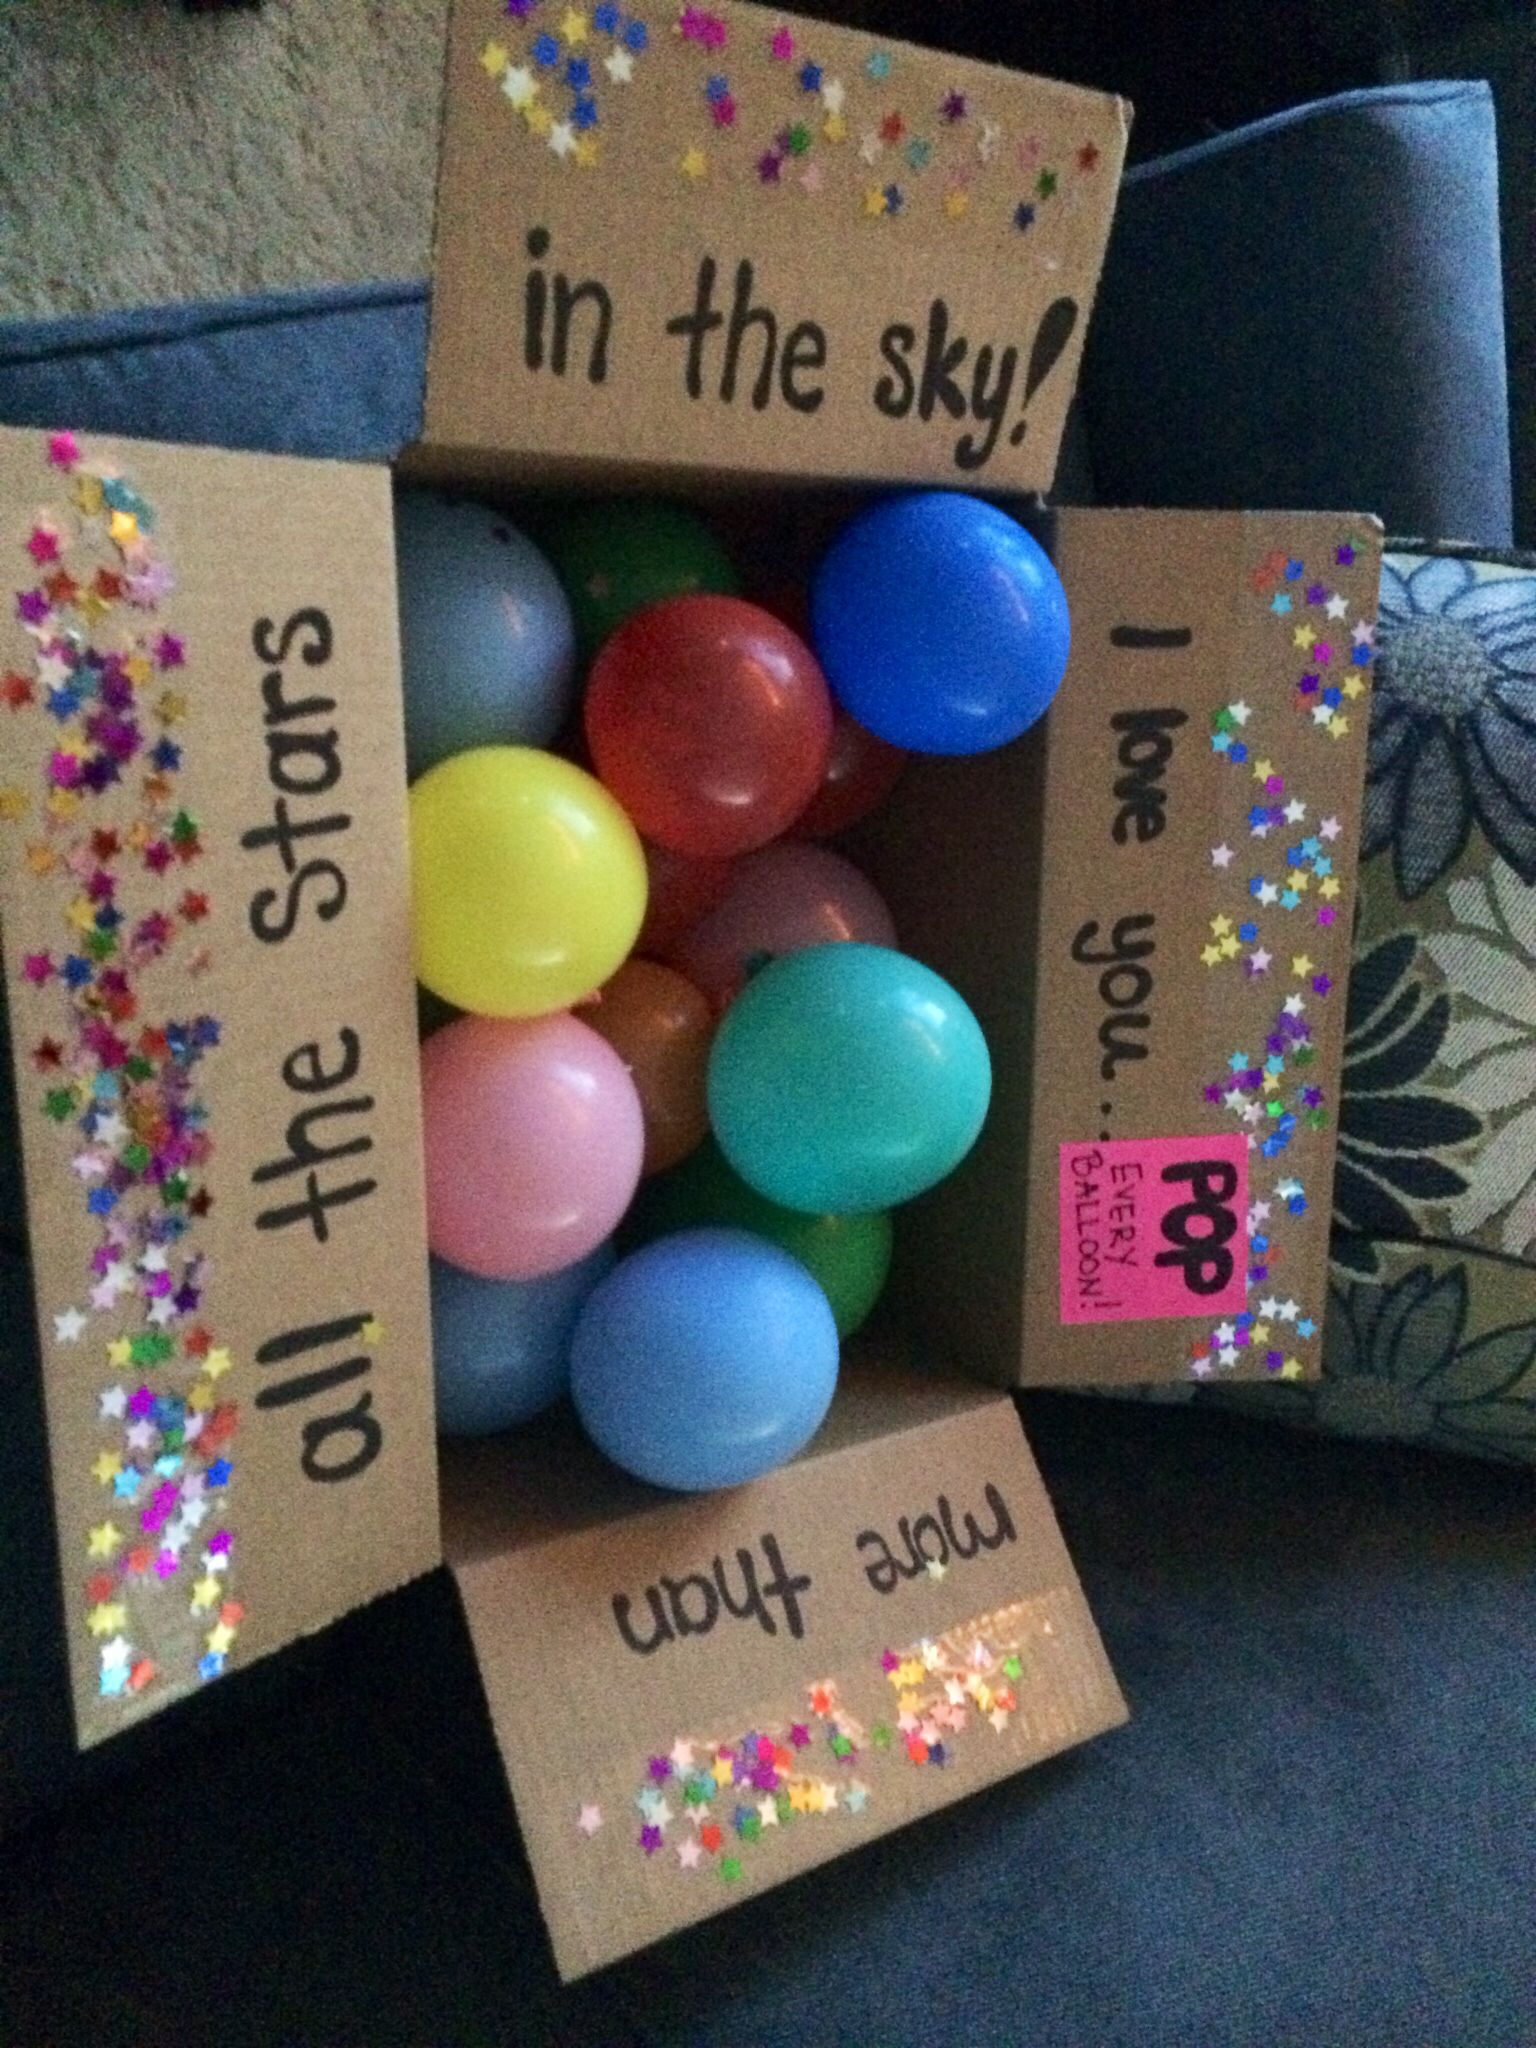 Long Distance Relationship Fun Package Idea Each Balloon Has A Message Inside With Something I Love Diy Valentines Gifts Valentine Gifts Valentines Gift Box